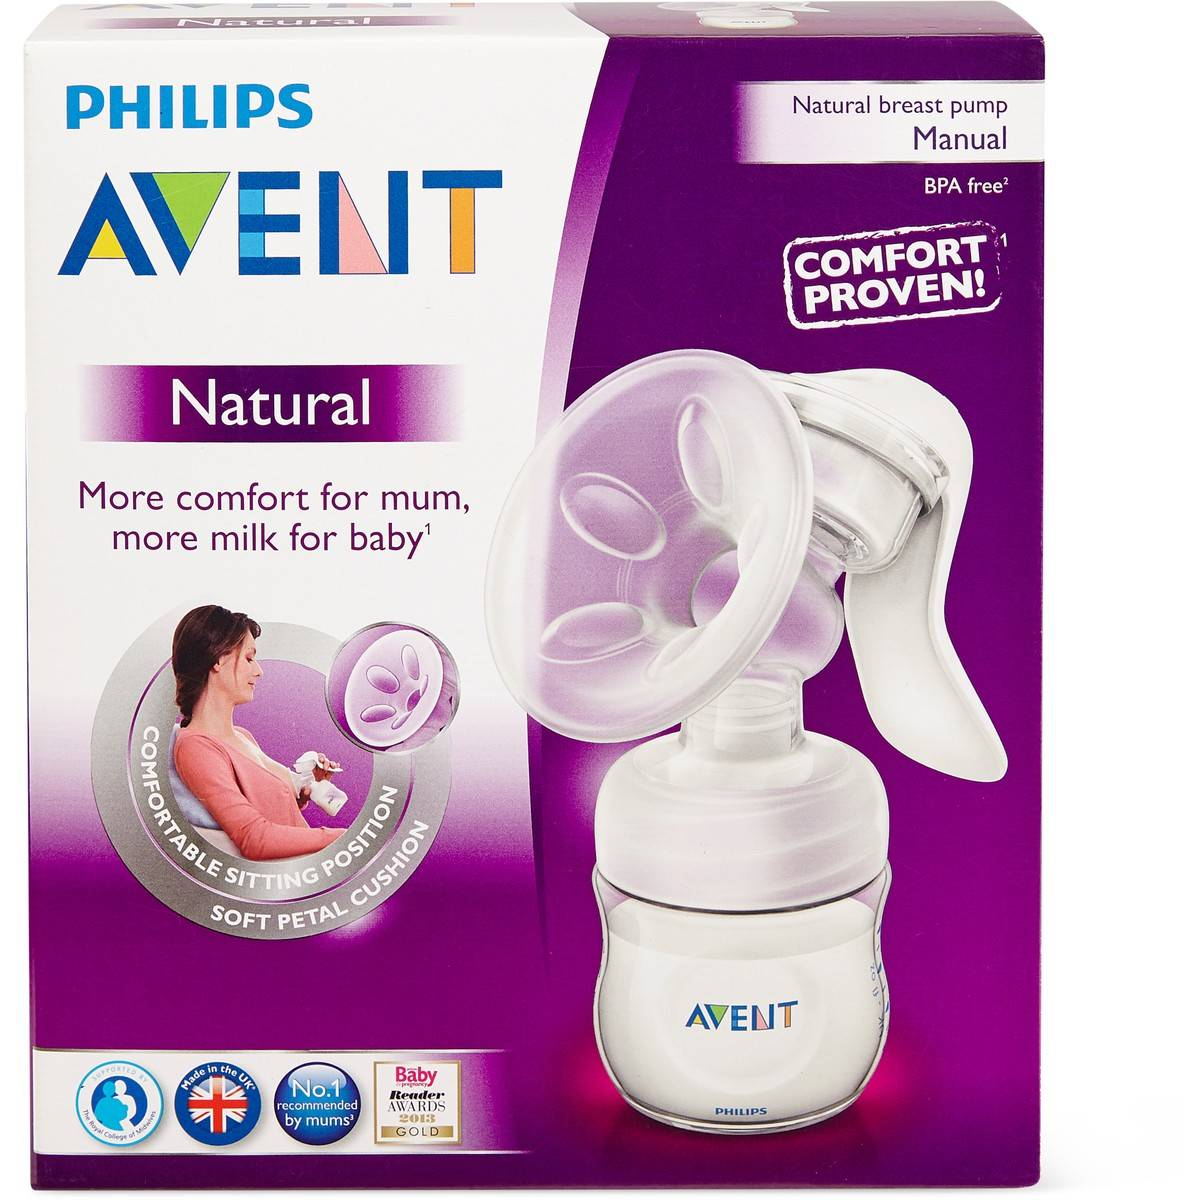 Philips Avent Comfort Manual Breast Pump Comfort Proven Soft Petal